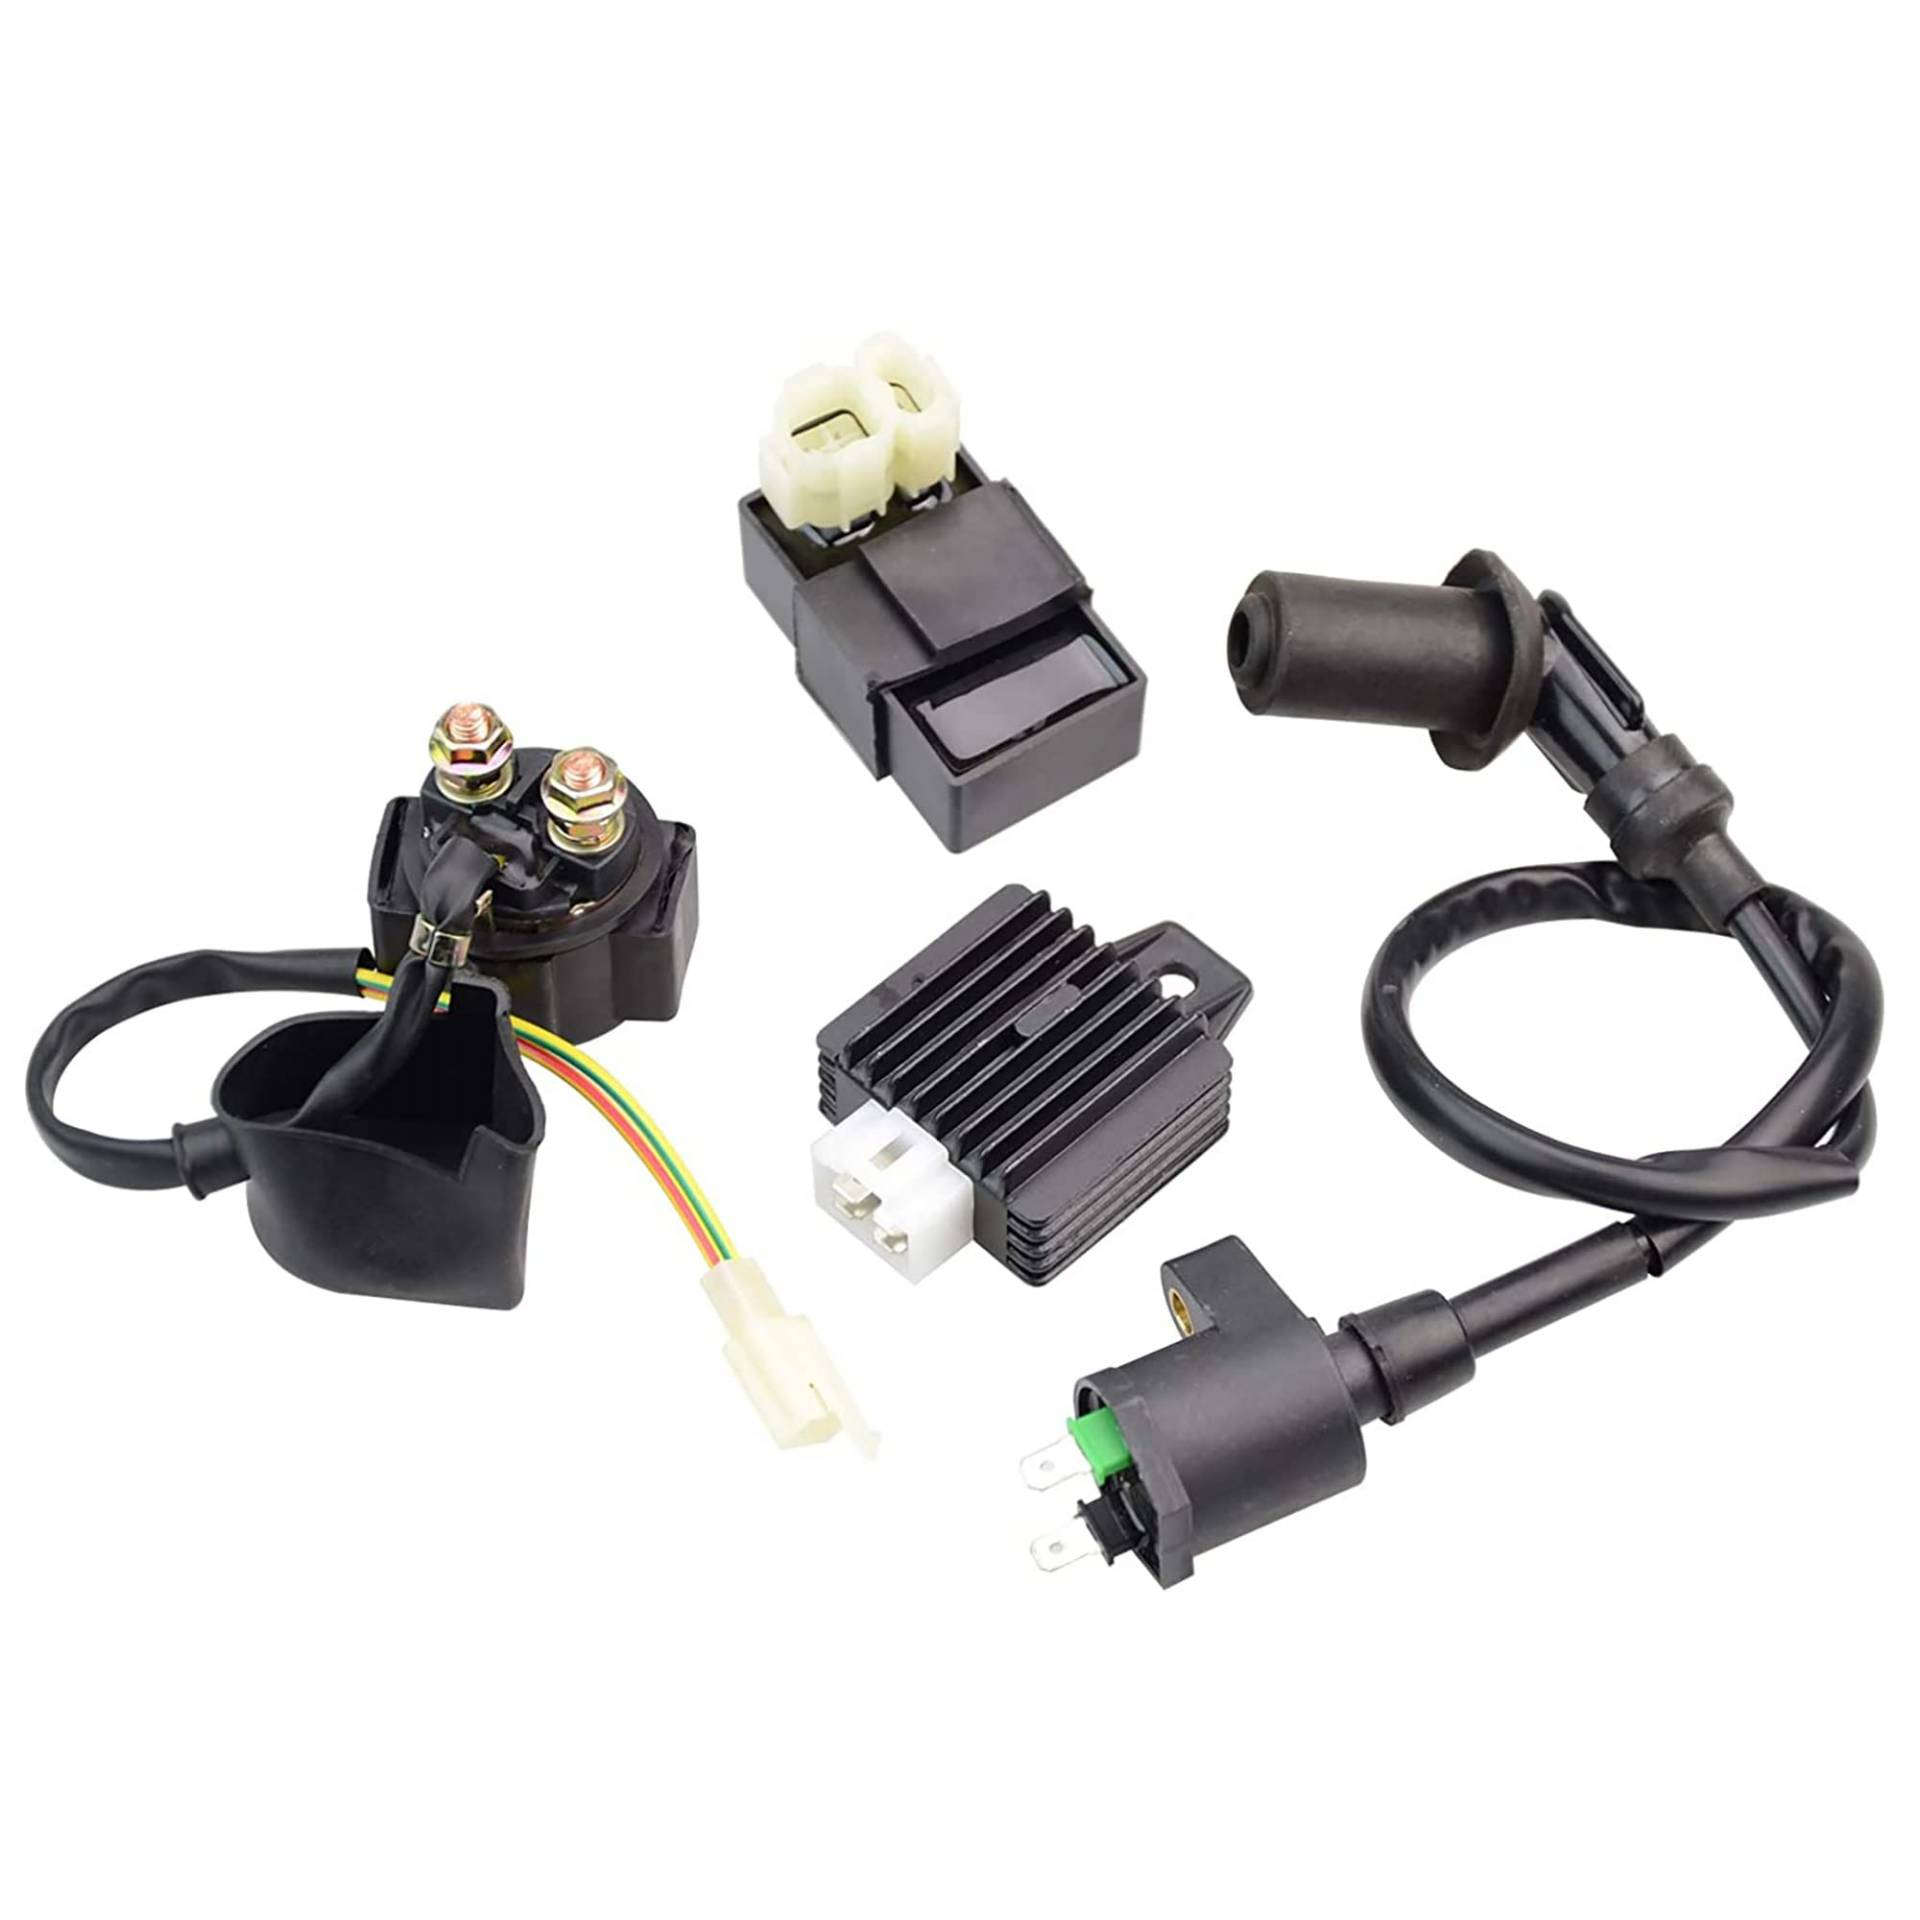 WOVELOT Racing Ignition Coil++CDI Box For GY6 50cc-150cc 4-Stroke Engines ATV